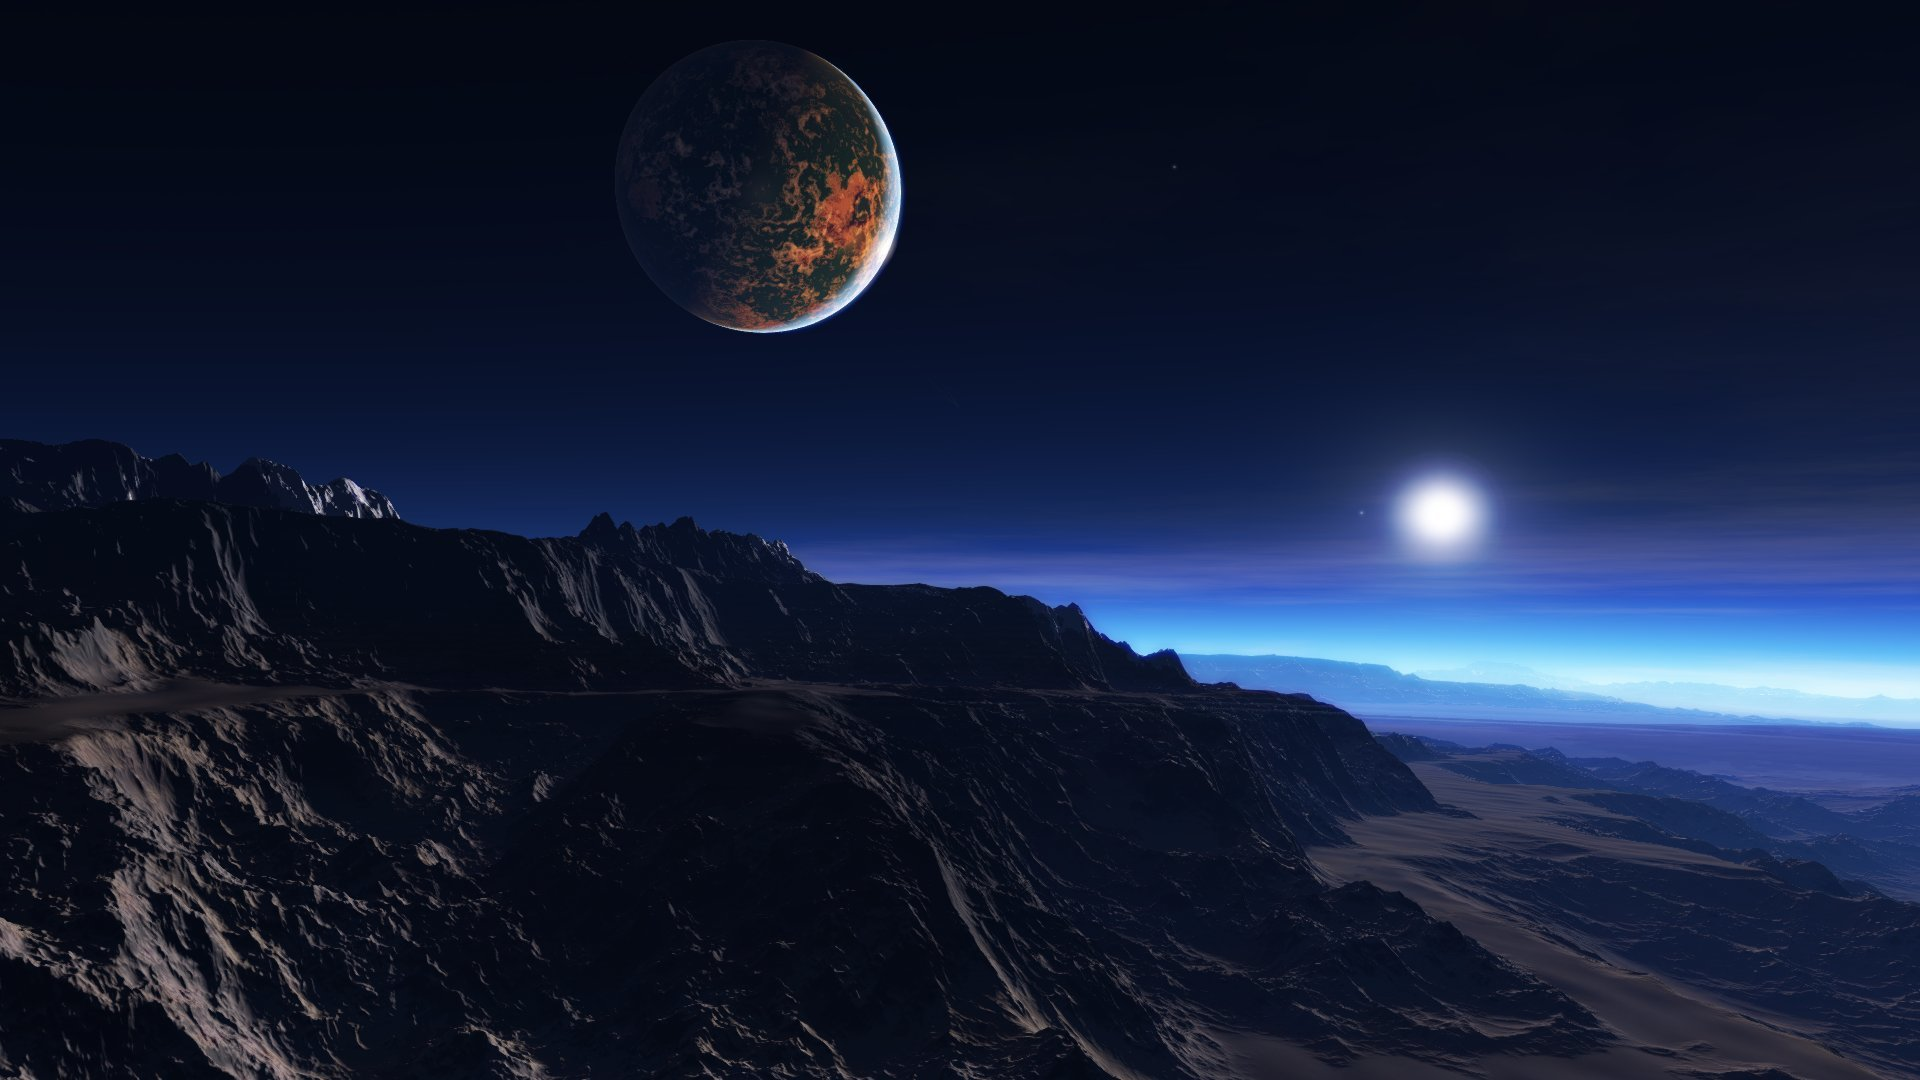 exoplanet_atmosphere_clouds_stars_moon_mist_mountains_rocks_101205_1920x1080